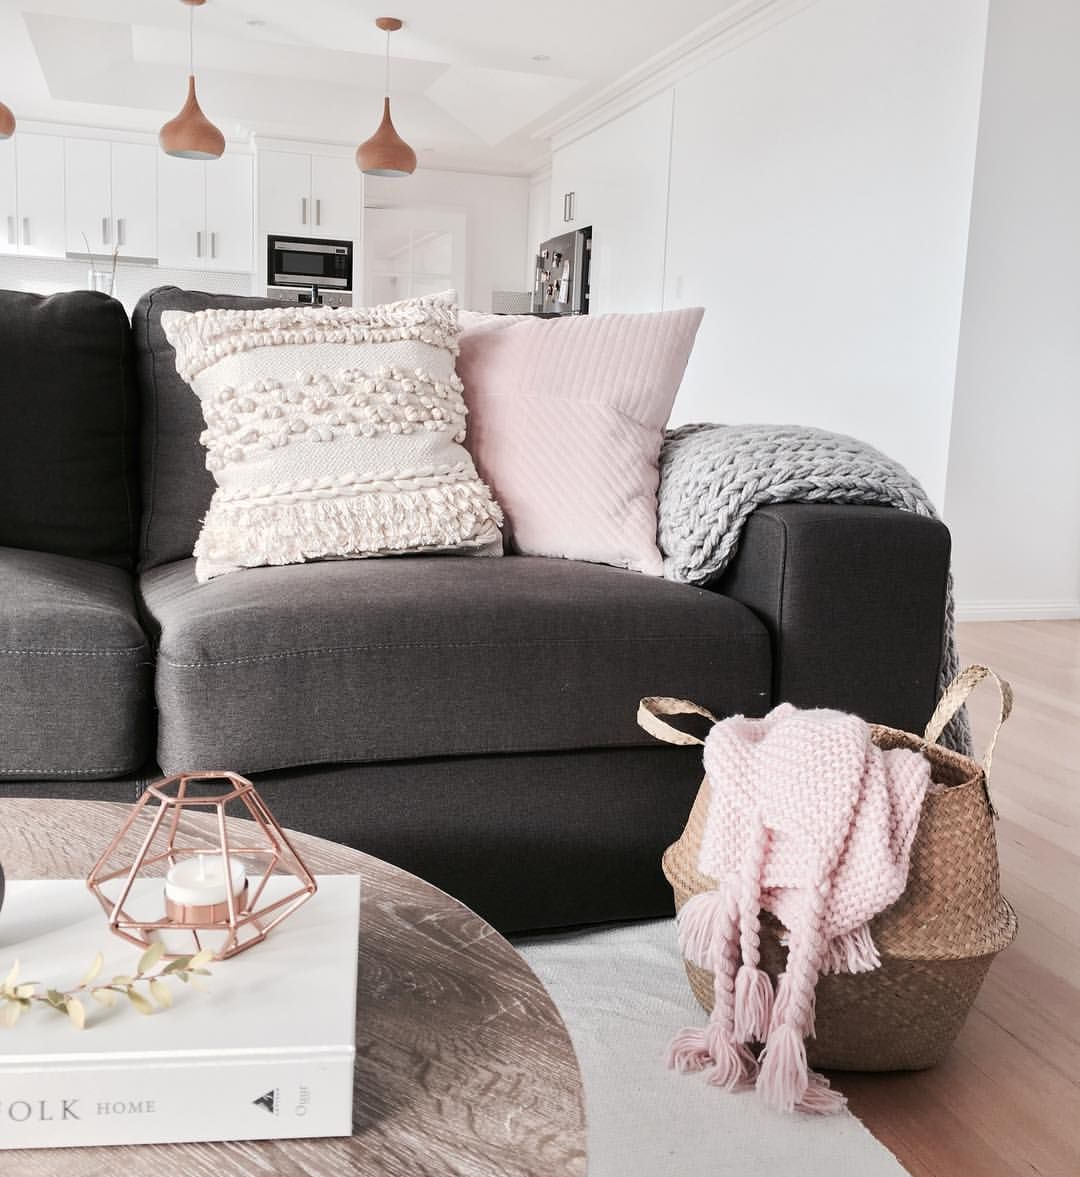 stylingbytiffany on instagram  living space  couch  pastel tones  scandi boho  pink white grey